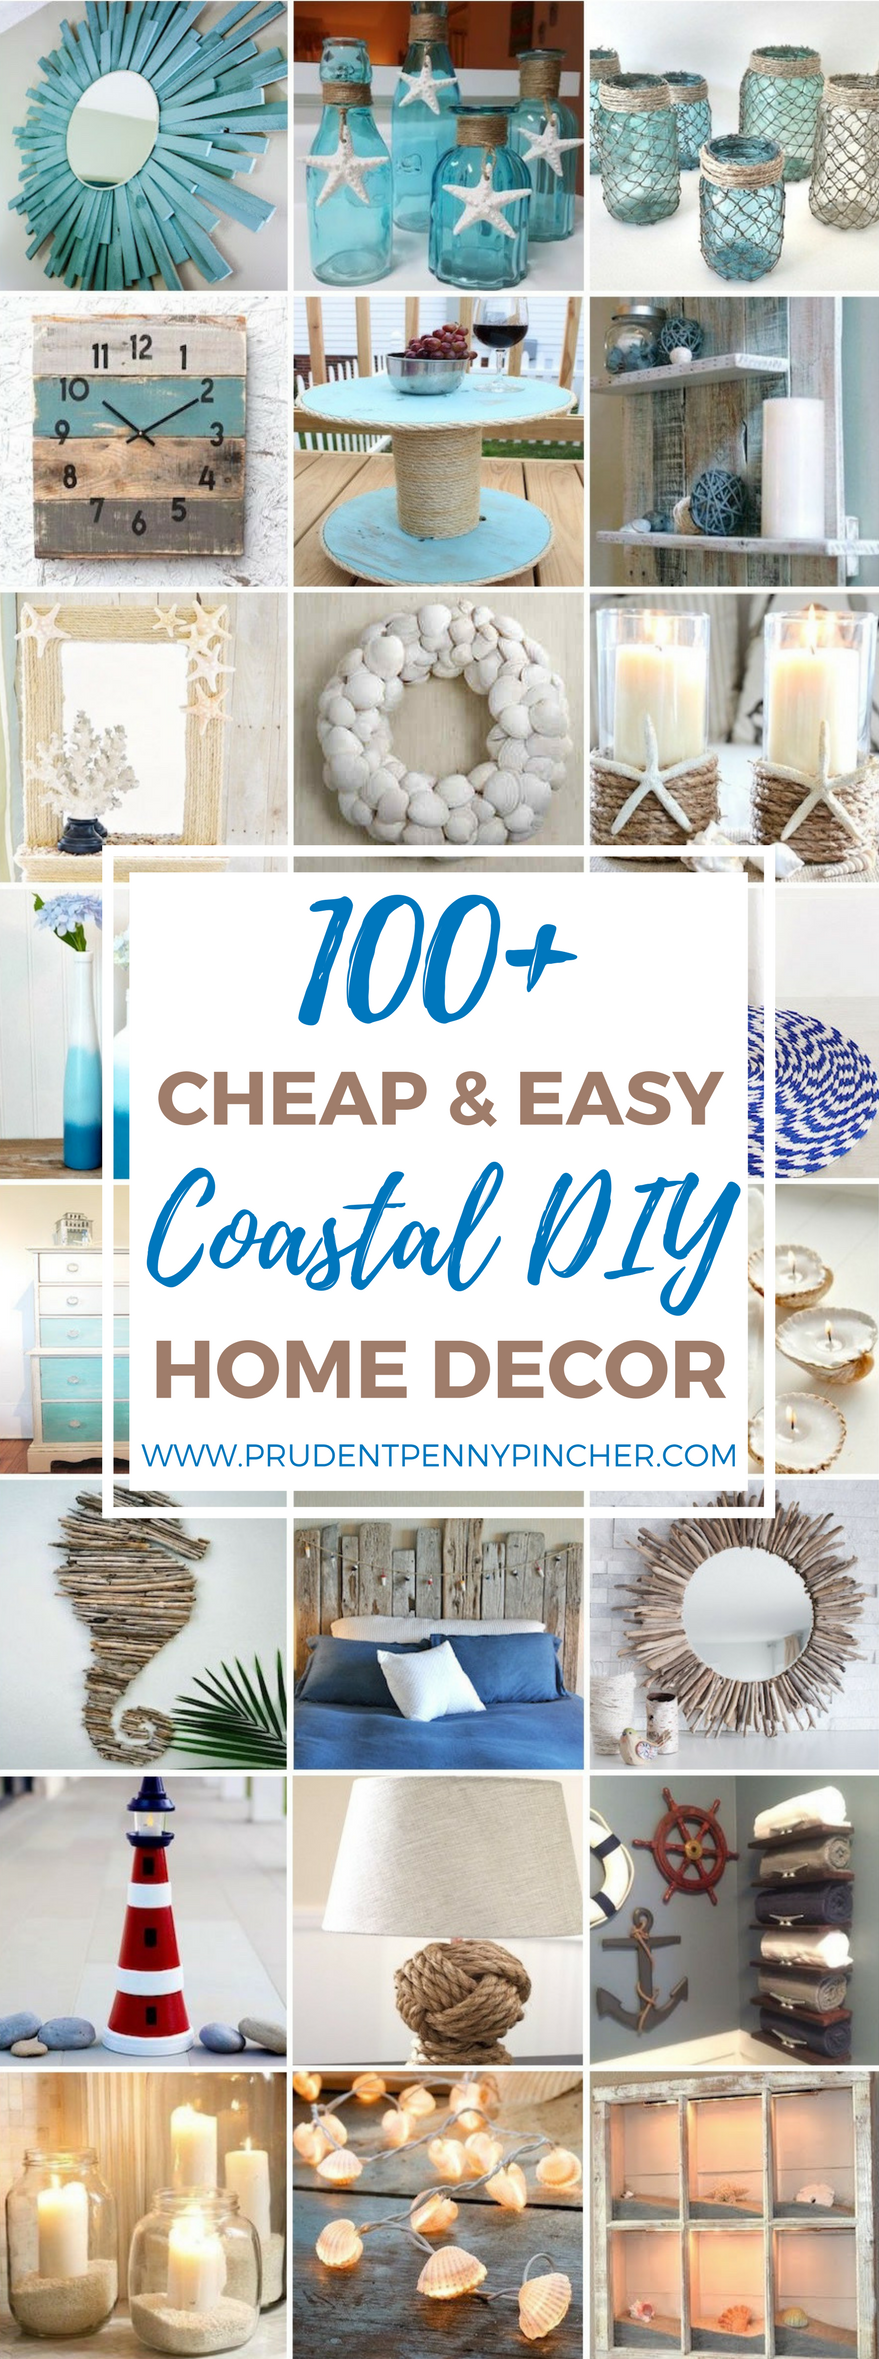 100 cheap and easy coastal diy home decor ideas prudent penny pincher - Easy home design tips ...